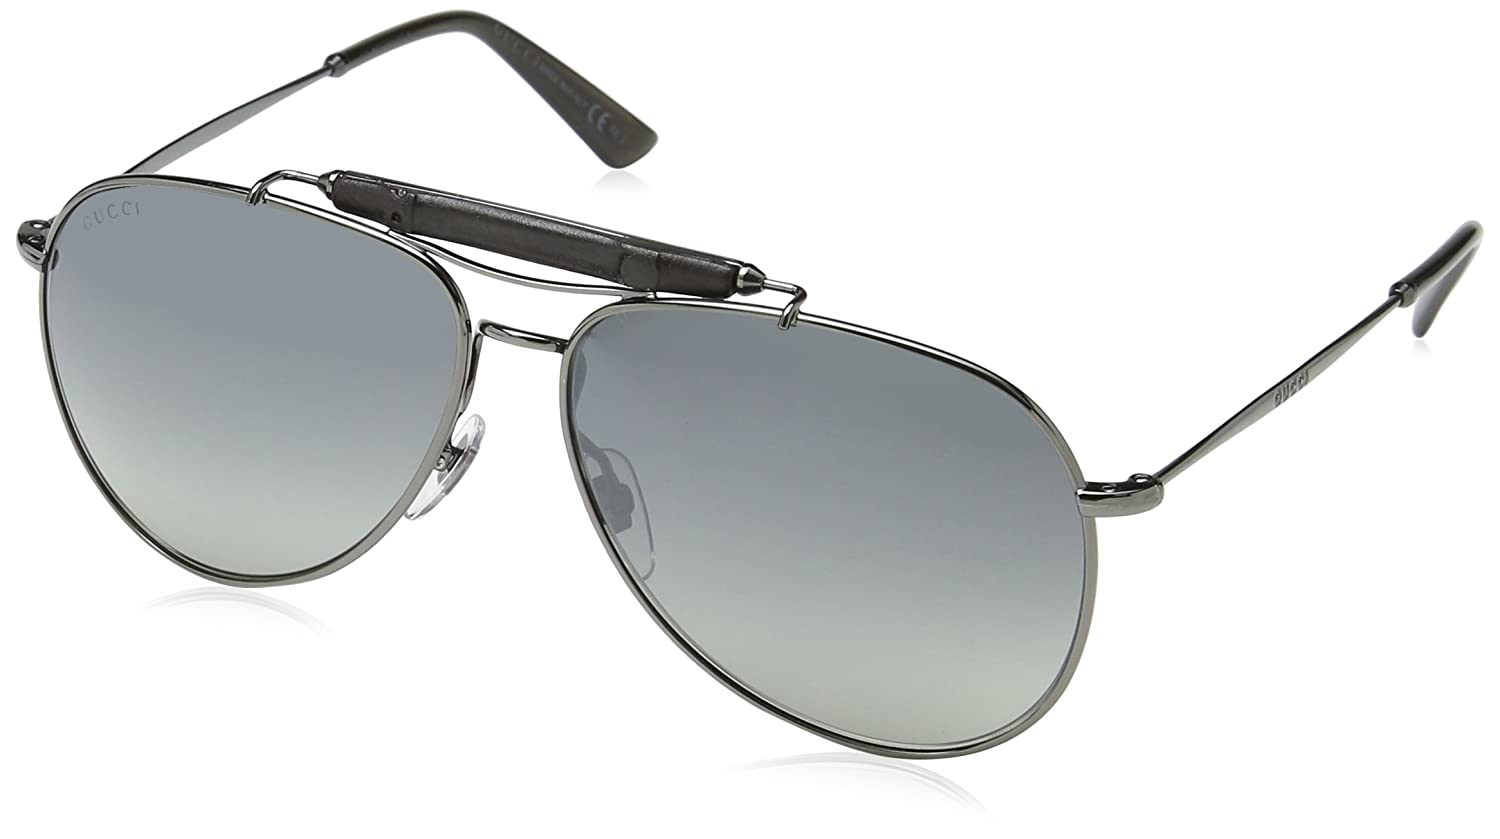 7f979db0f64d7 Amazon.com  Gucci Men s GG 2235 S Dark Ruthenium Grey Mirrored Silver   Clothing